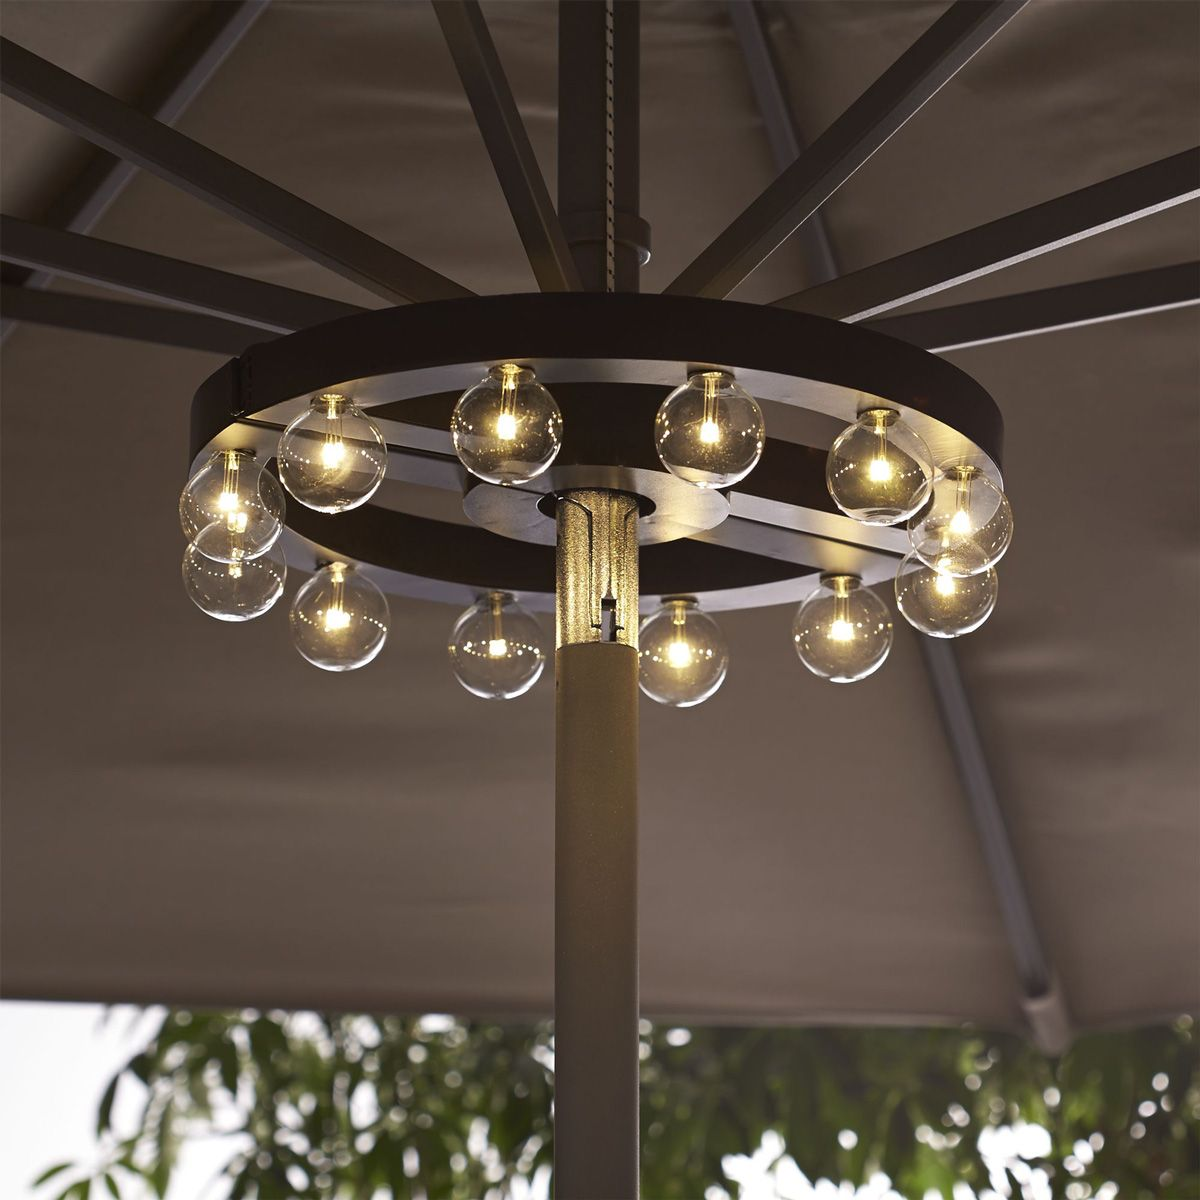 Solar Umbrella Clip Lights Adorable Patio Umbrella Marquee Lights  Pinterest  Patio Umbrellas Marquee Design Decoration